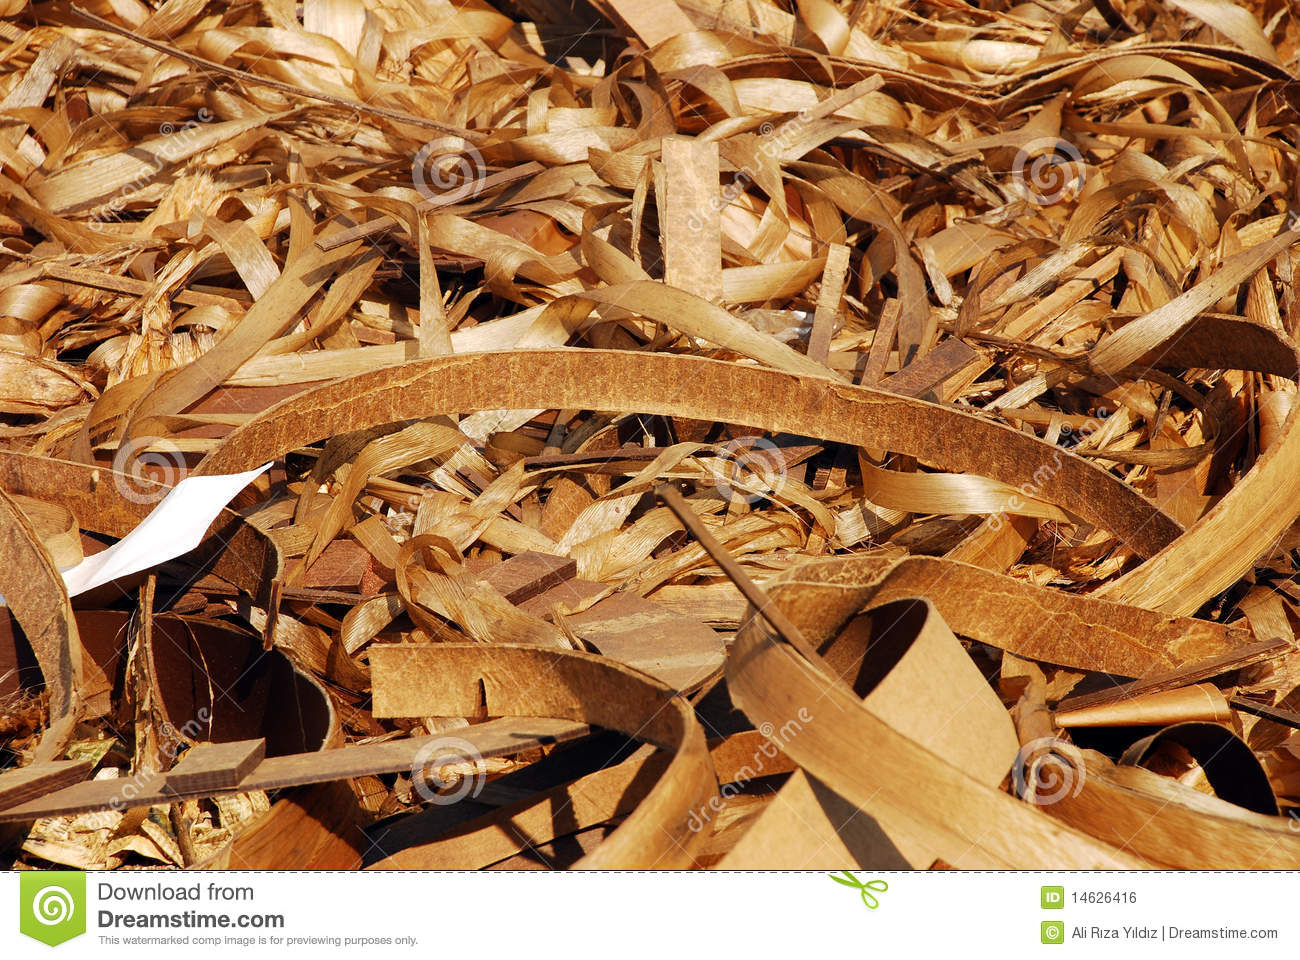 Curly Wood Shavings Royalty Free Stock Image - Image: 14626416